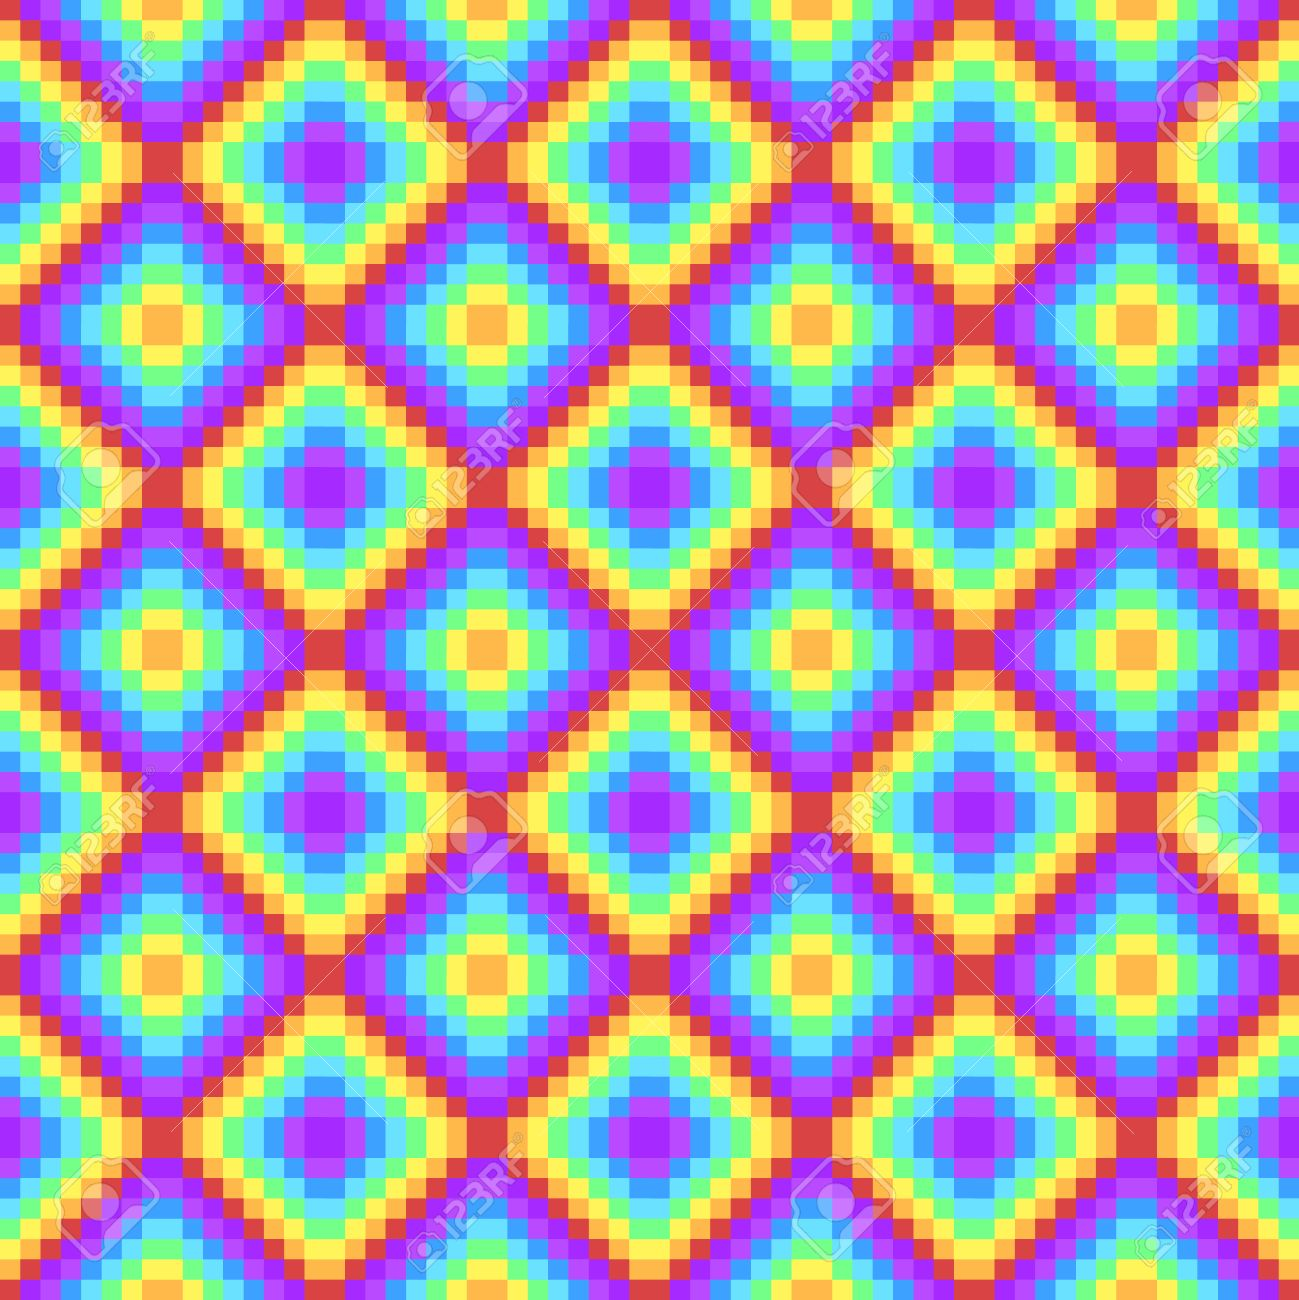 Pixel Art Rainbow Colored Psychedelic Background Royalty Free Cliparts Vectors And Stock Illustration Image 44683949